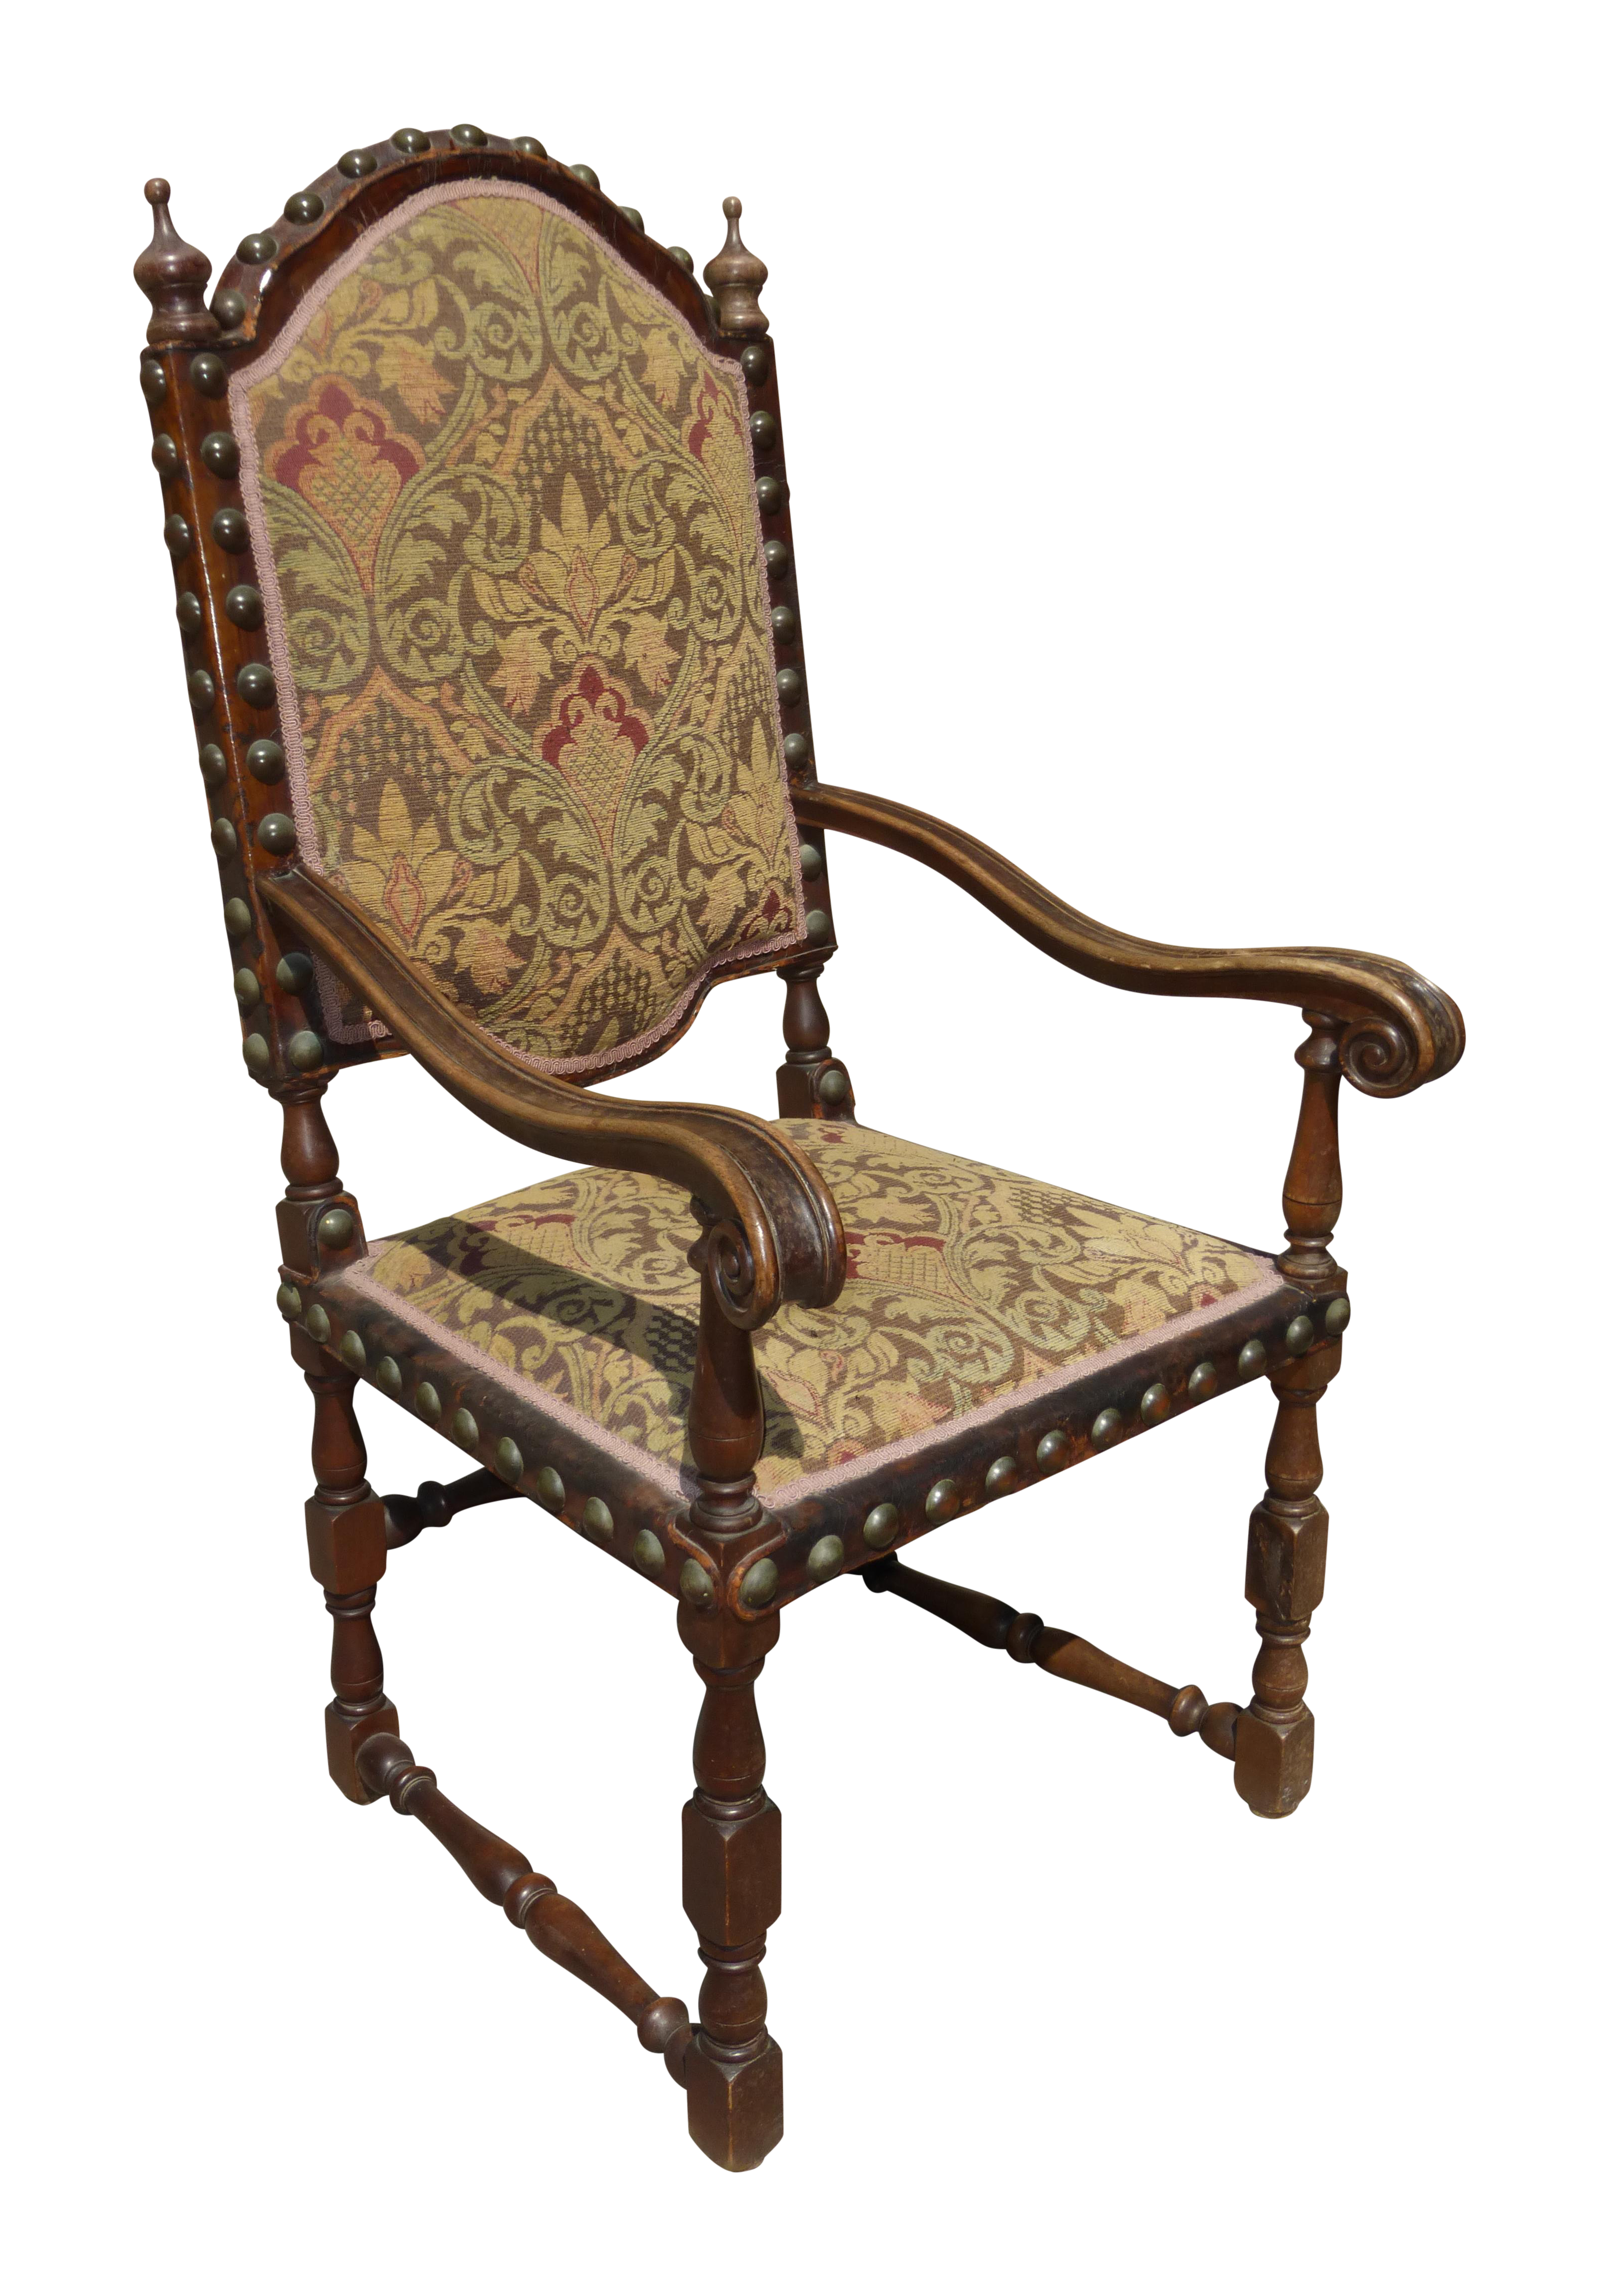 Spanish Revival Throne Chair with Leather